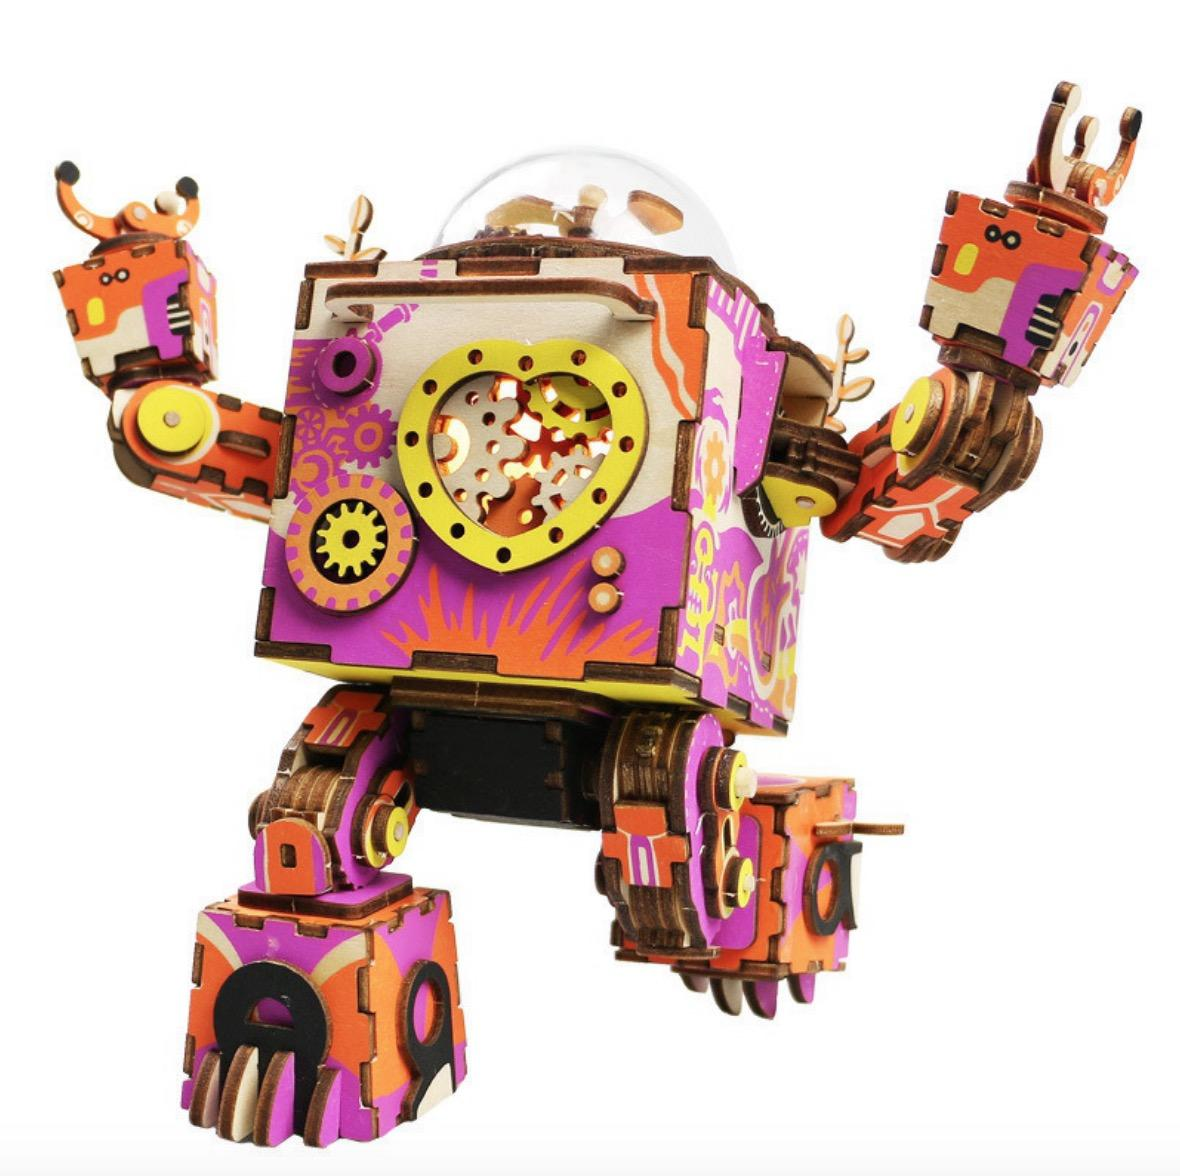 2019 Robotime DIY Action & Toy Figure Steampunk Rotatable Robot Wooden  Clockwork Music Box Perfect Gifts For Friends Children From Stafaniely,  $57.68.